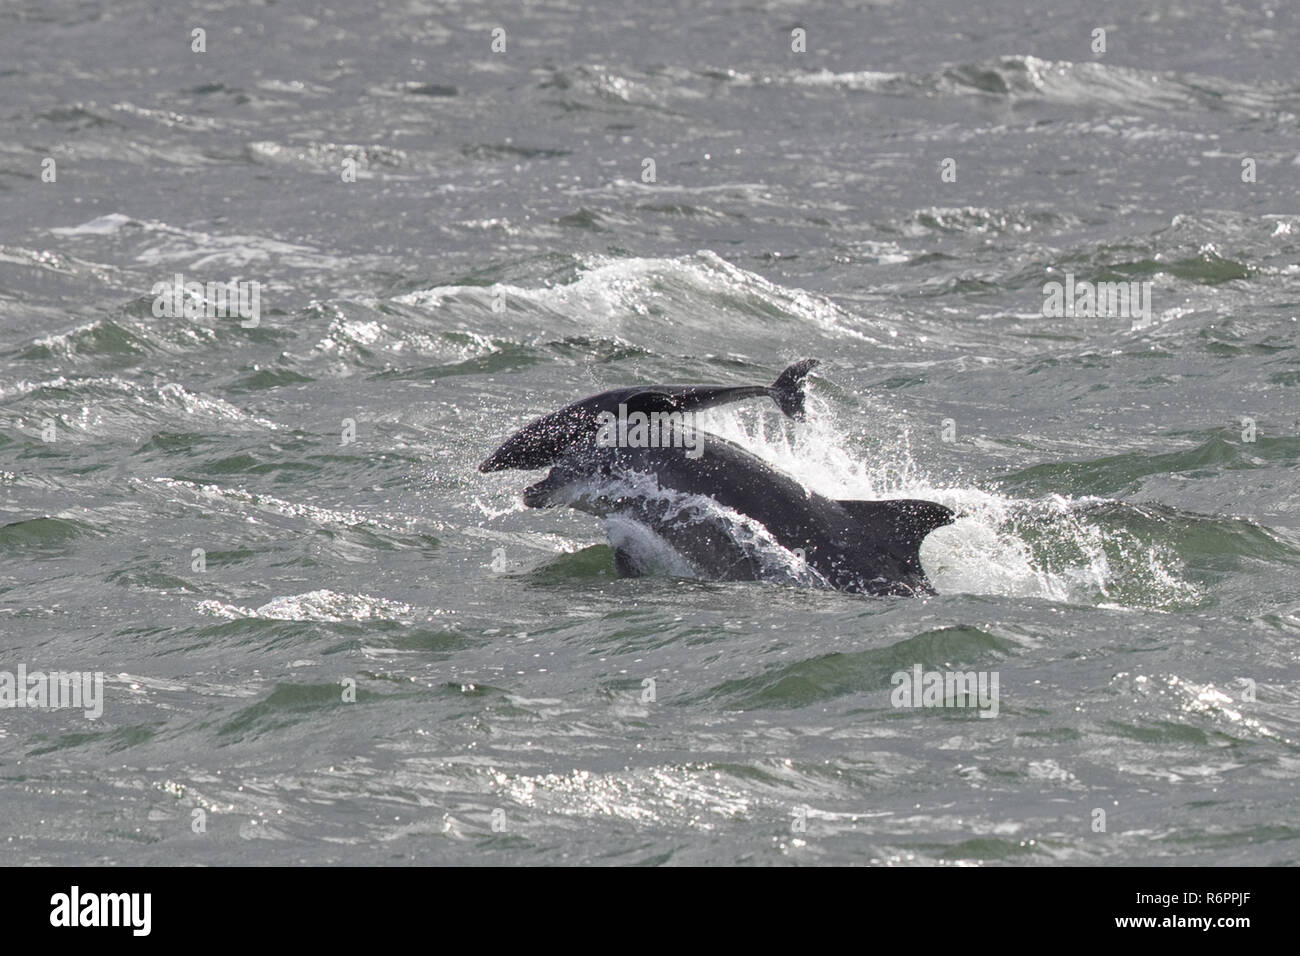 Bottlenose dolphin tossing 2 week old calf clear of the water in the Moray Firth, Scotland Stock Photo